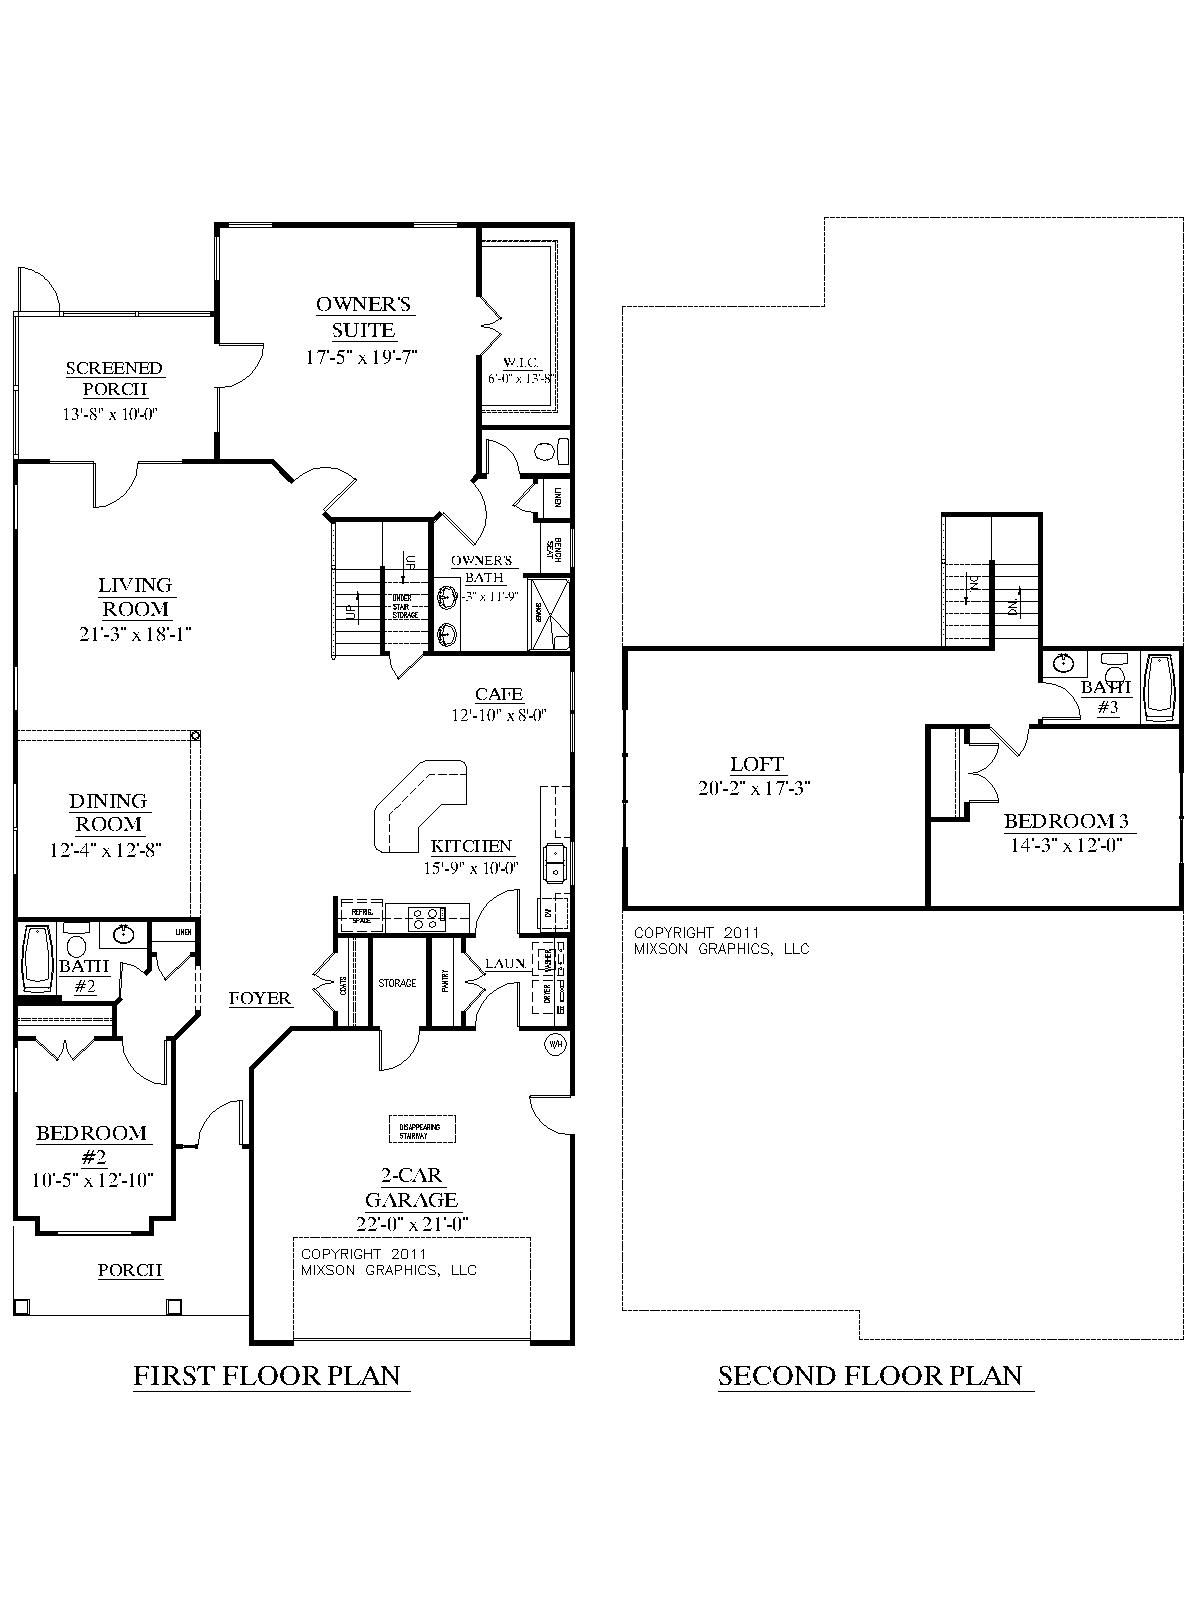 House Plan 2755 Woodbridge Floor Plan Traditional 1 1 2 Story House Plan With 3 Bedrooms And 3 Full Loft Floor Plans House Plan With Loft Garage Floor Plans